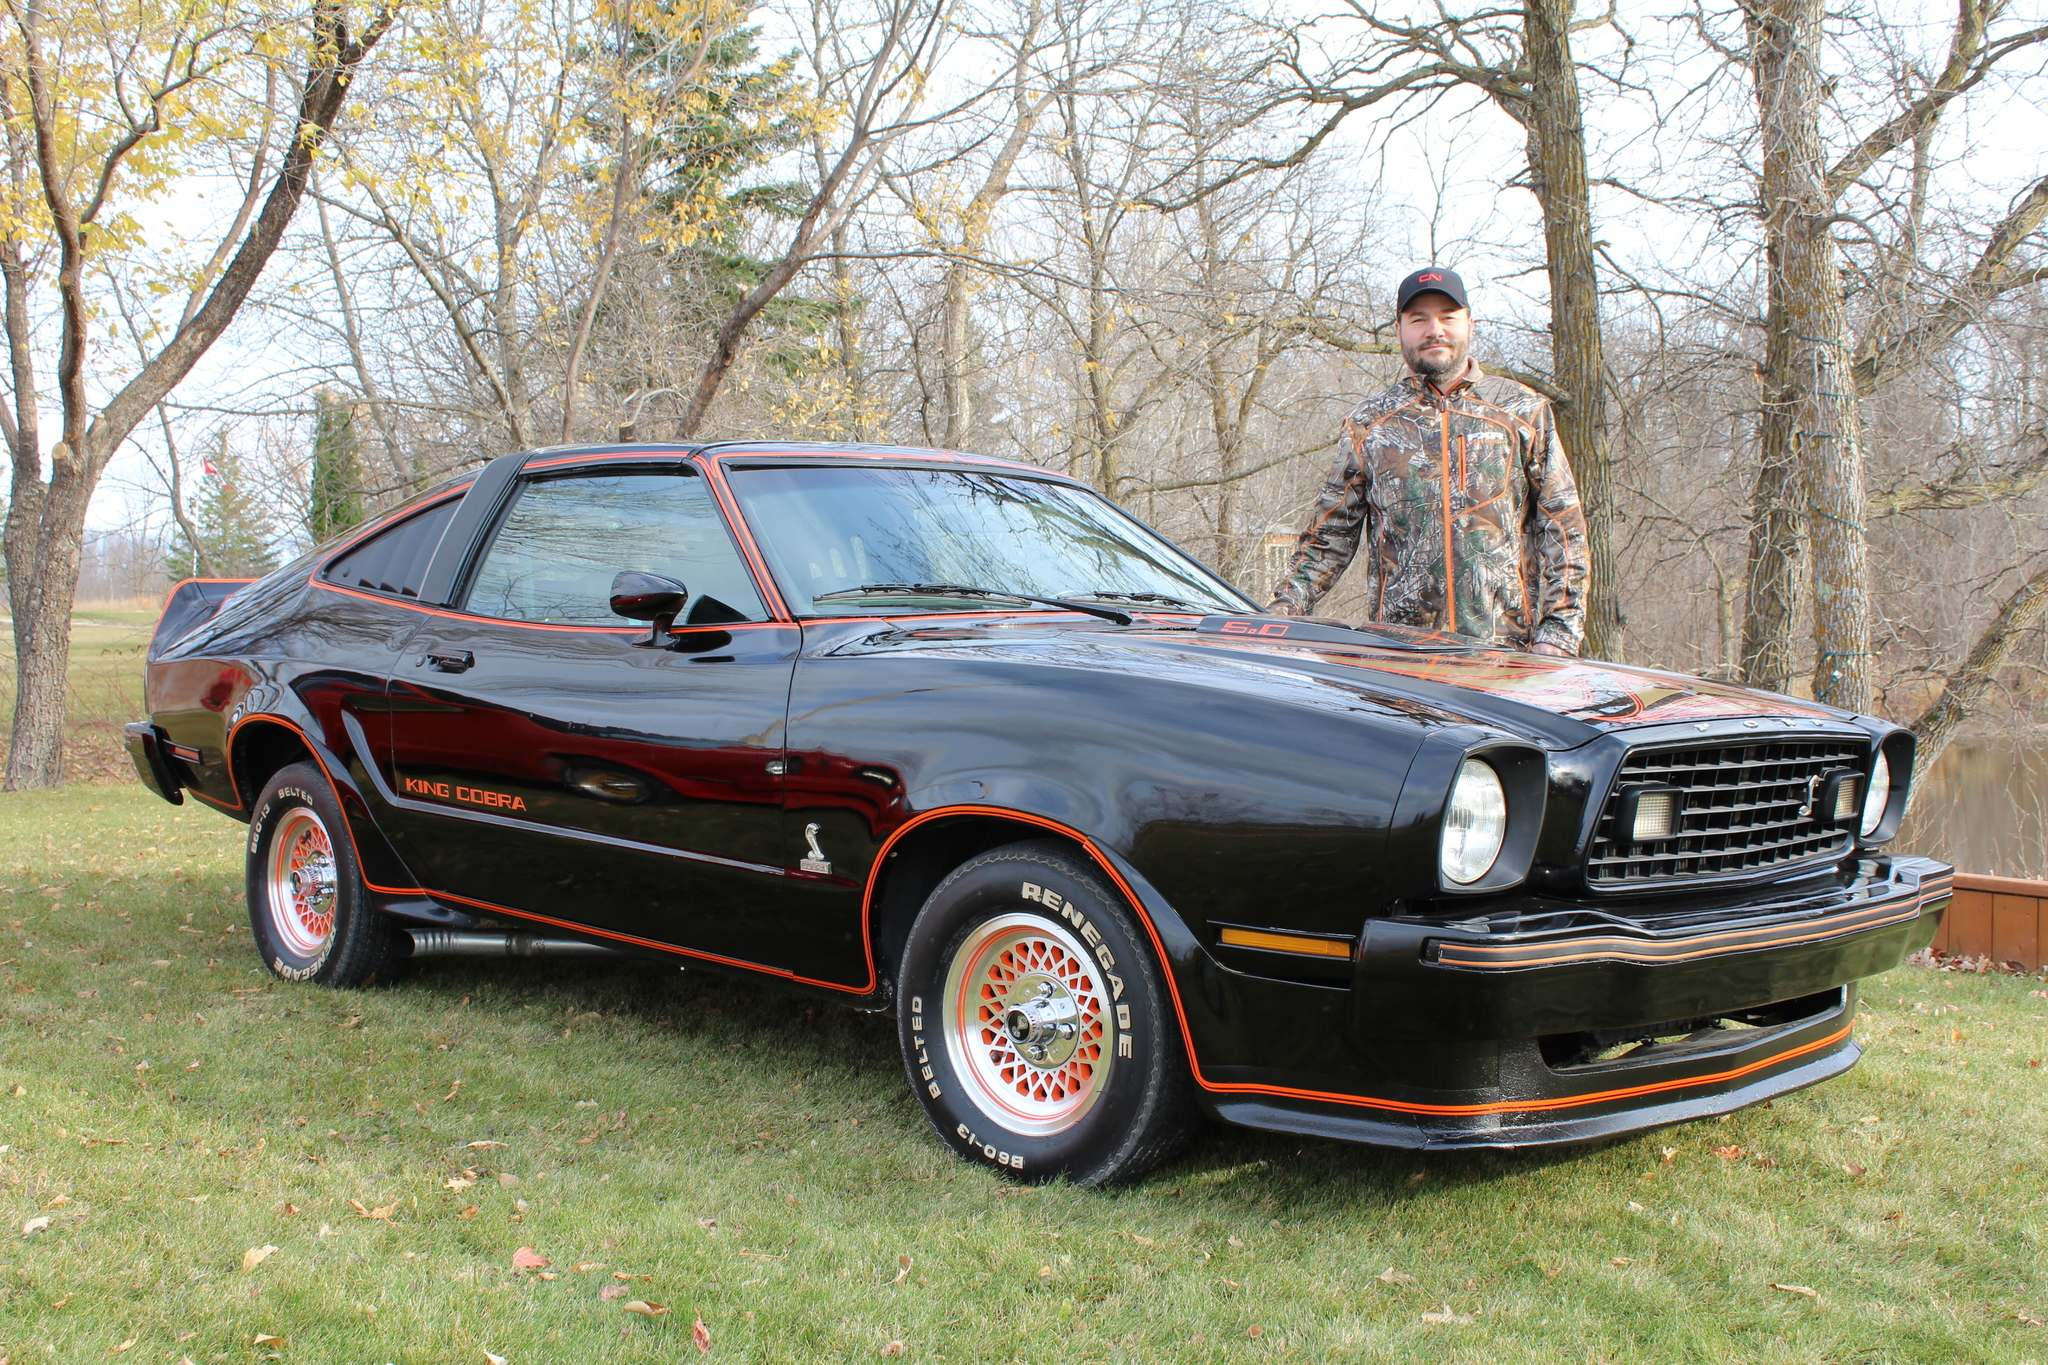 Bill bonni of beausejour found this black ford mustang king cobra for sale online and purchased